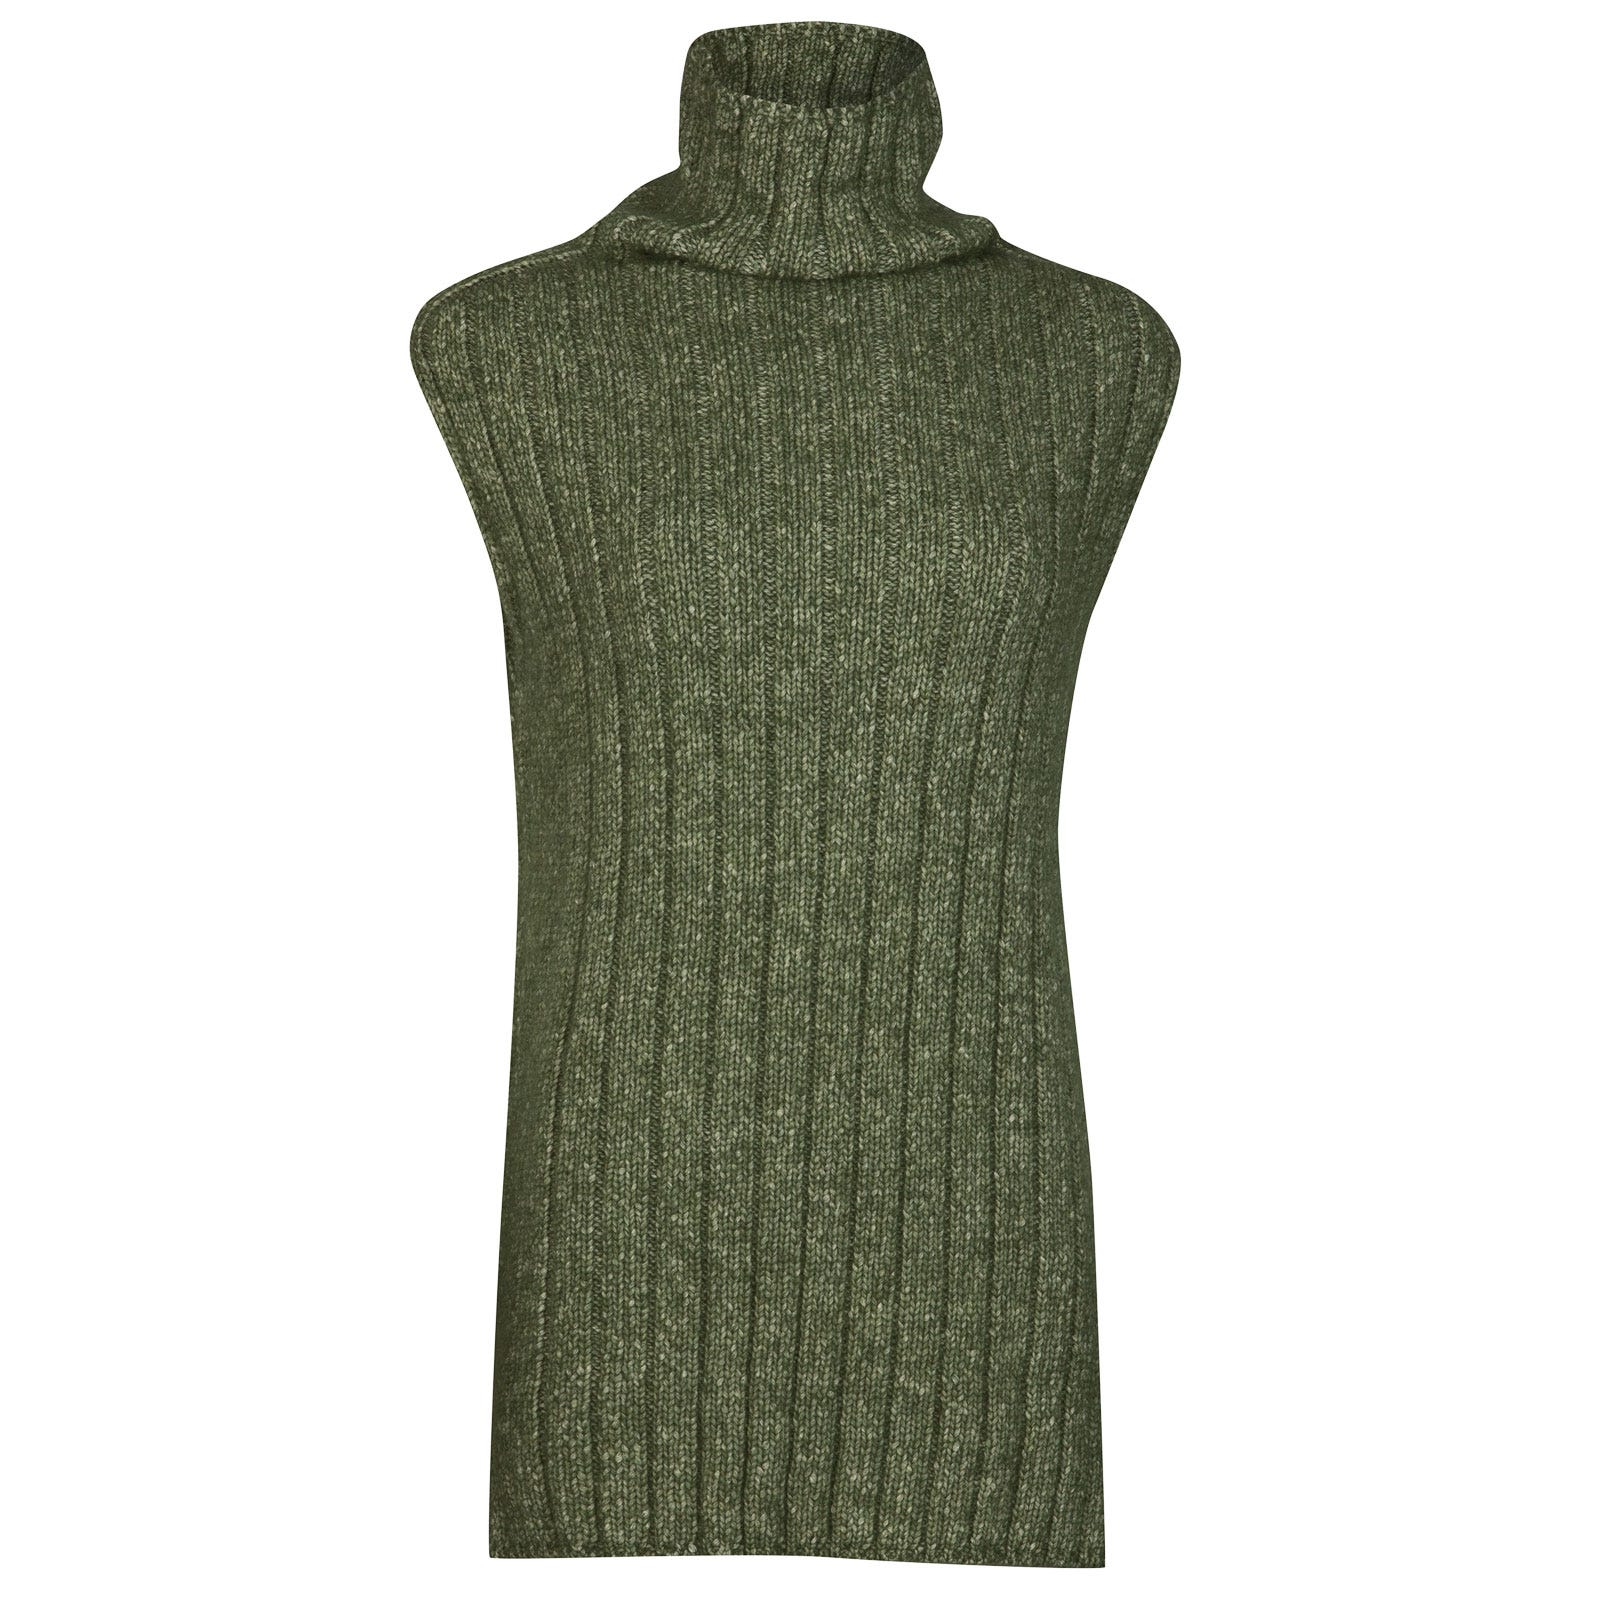 John Smedley conwy Alpaca, Wool & Cotton Sweater in Kielder Green-L